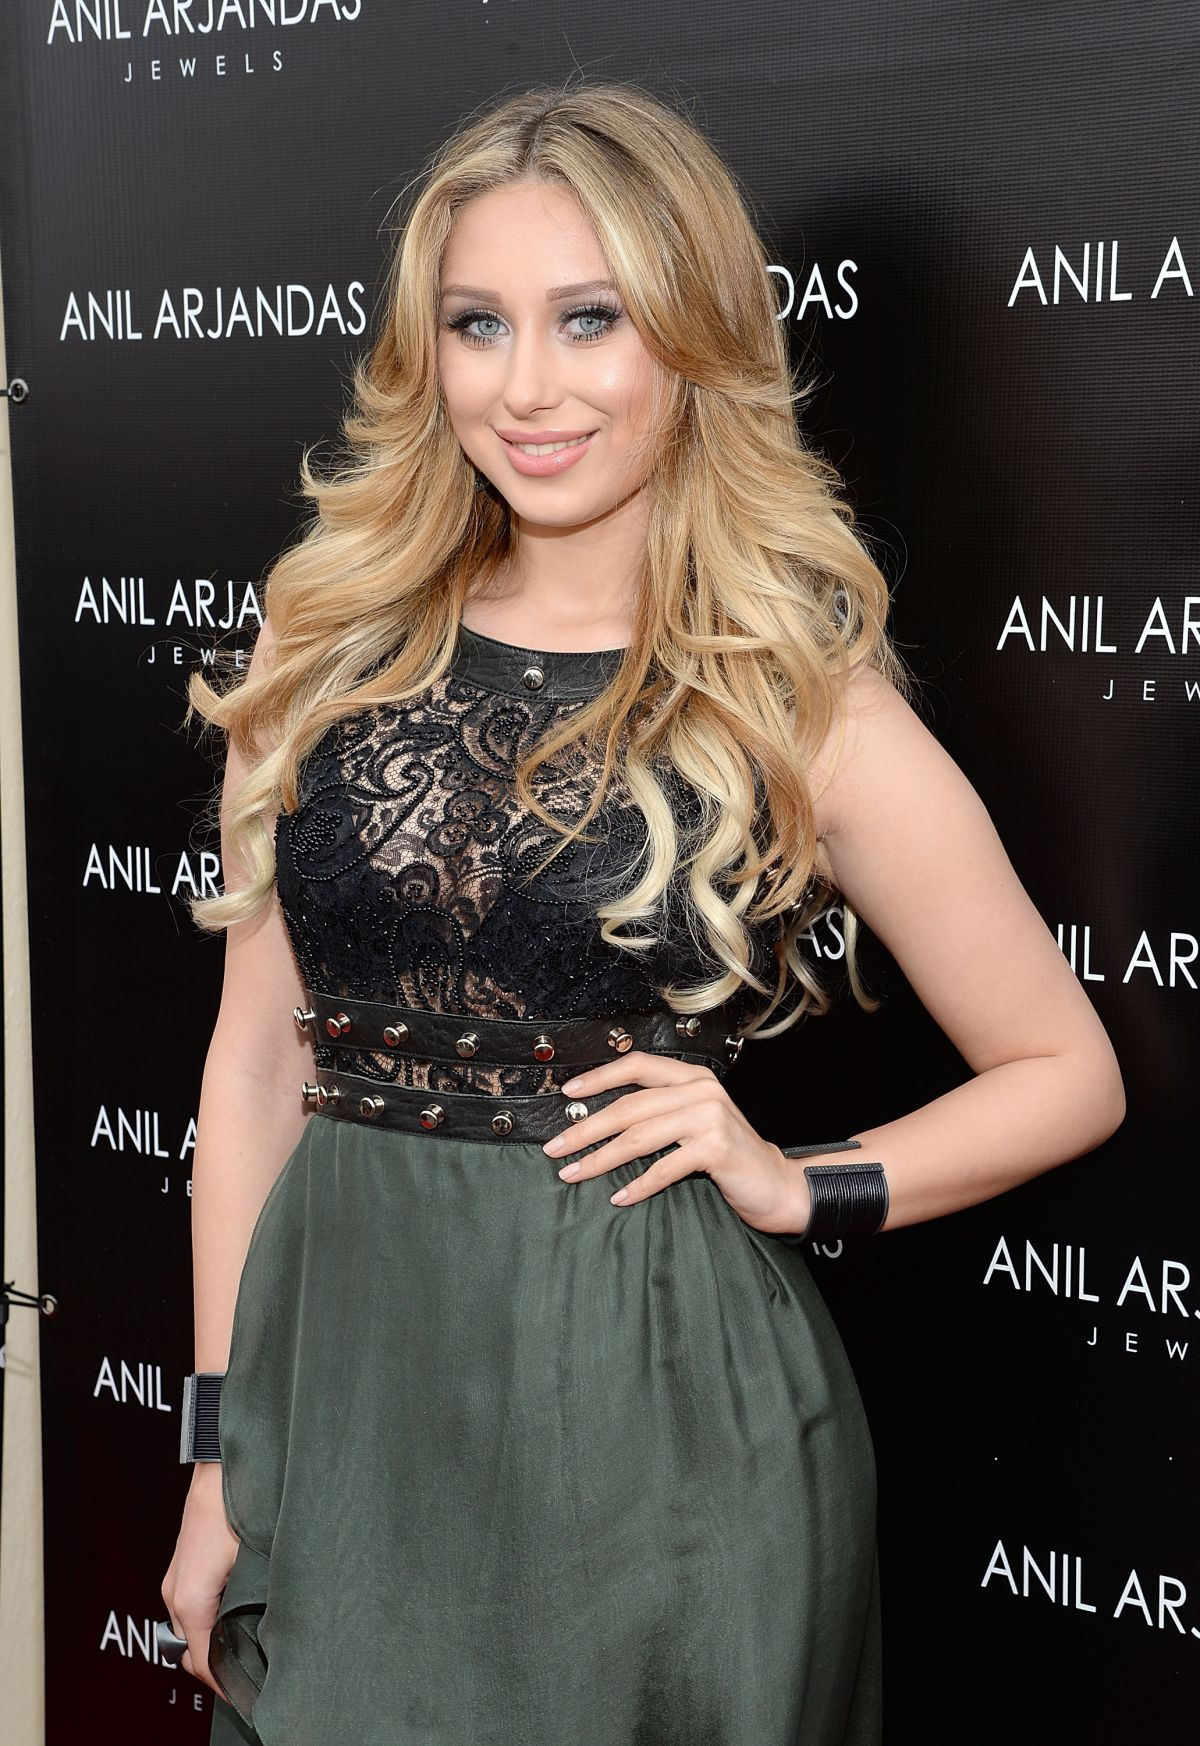 ELLA MOIS at Anil Arjandas Jewels US Flagship Store Opening in West Hollywood